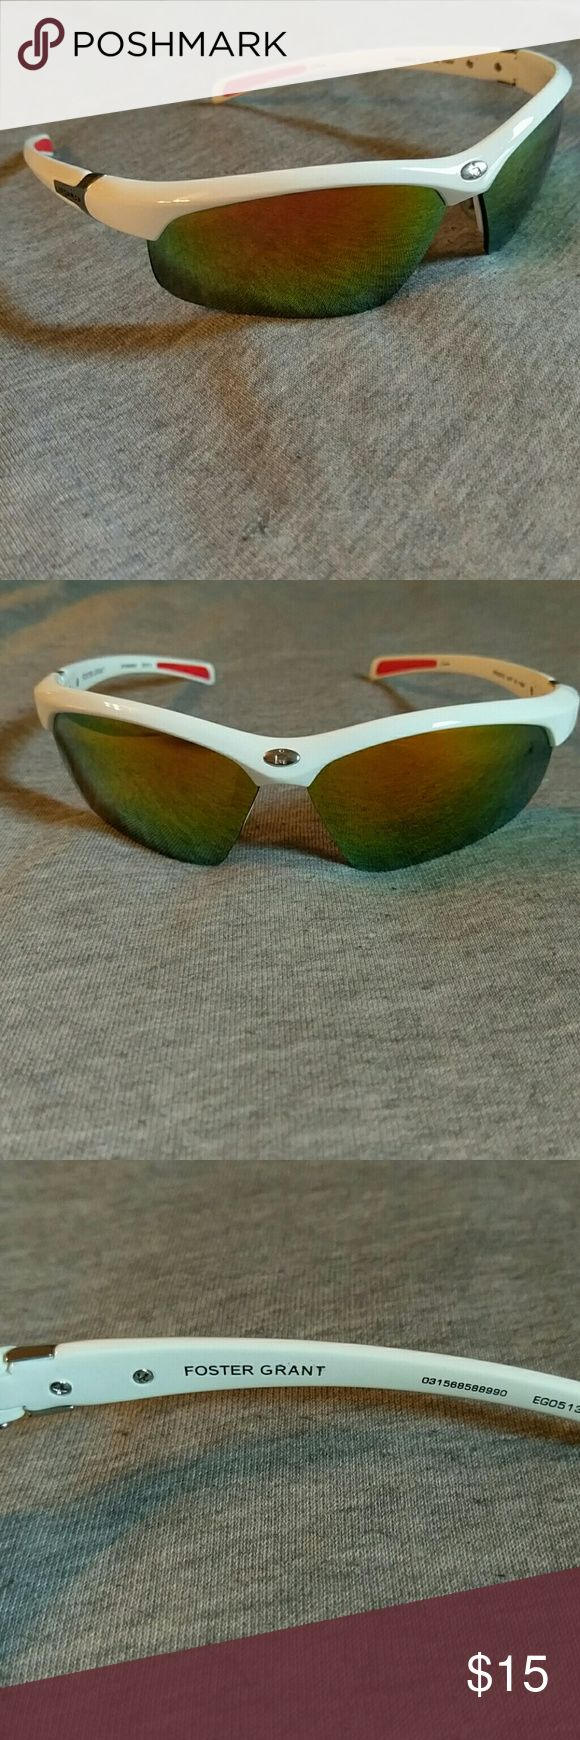 💥SALE💥 Foster Grant ironman sunglasses Perfect condition Foster Grant Other